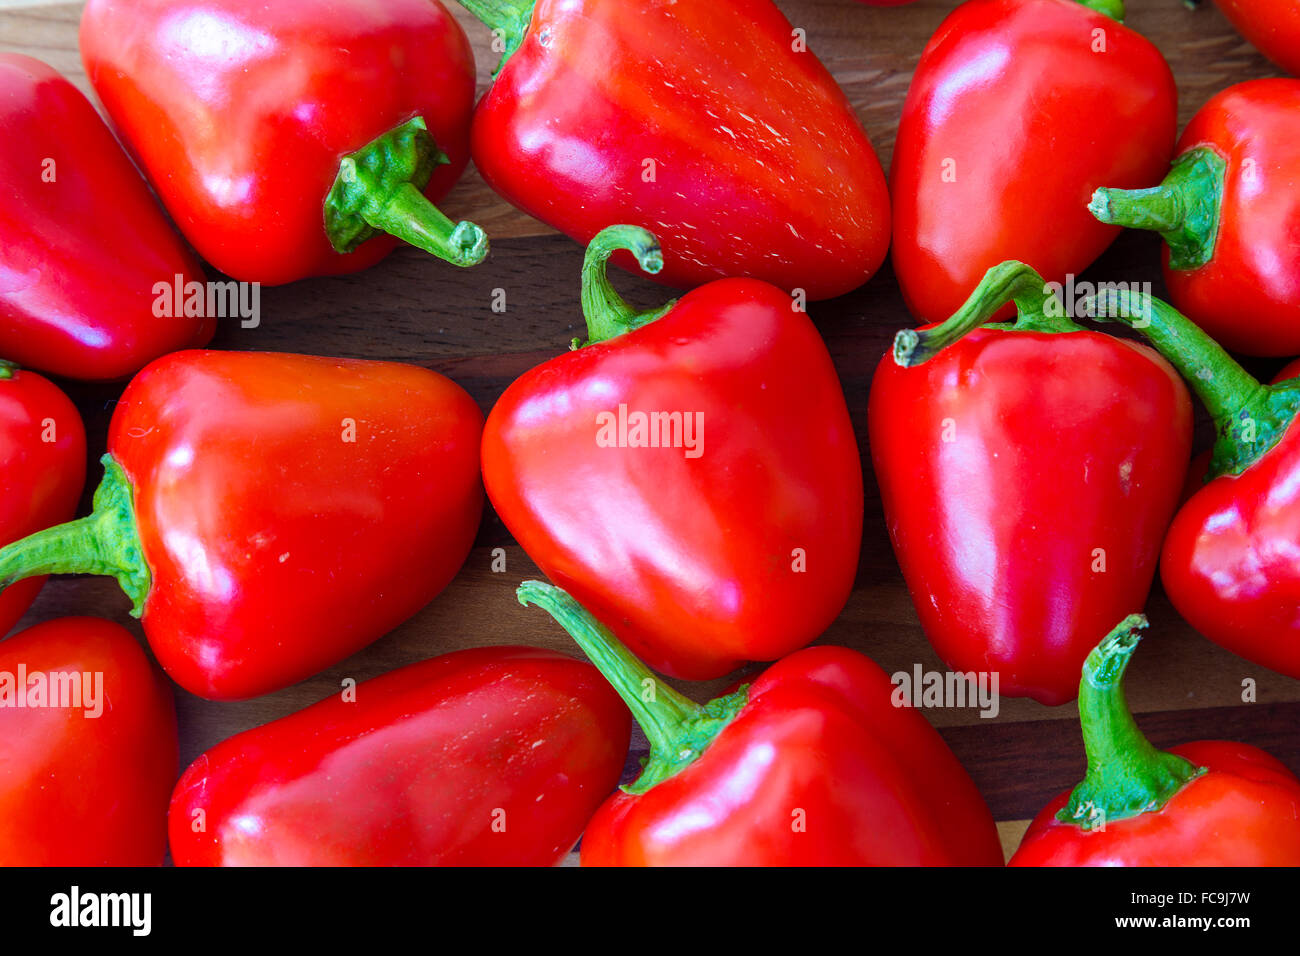 Little red peppers from the home garden. - Stock Image